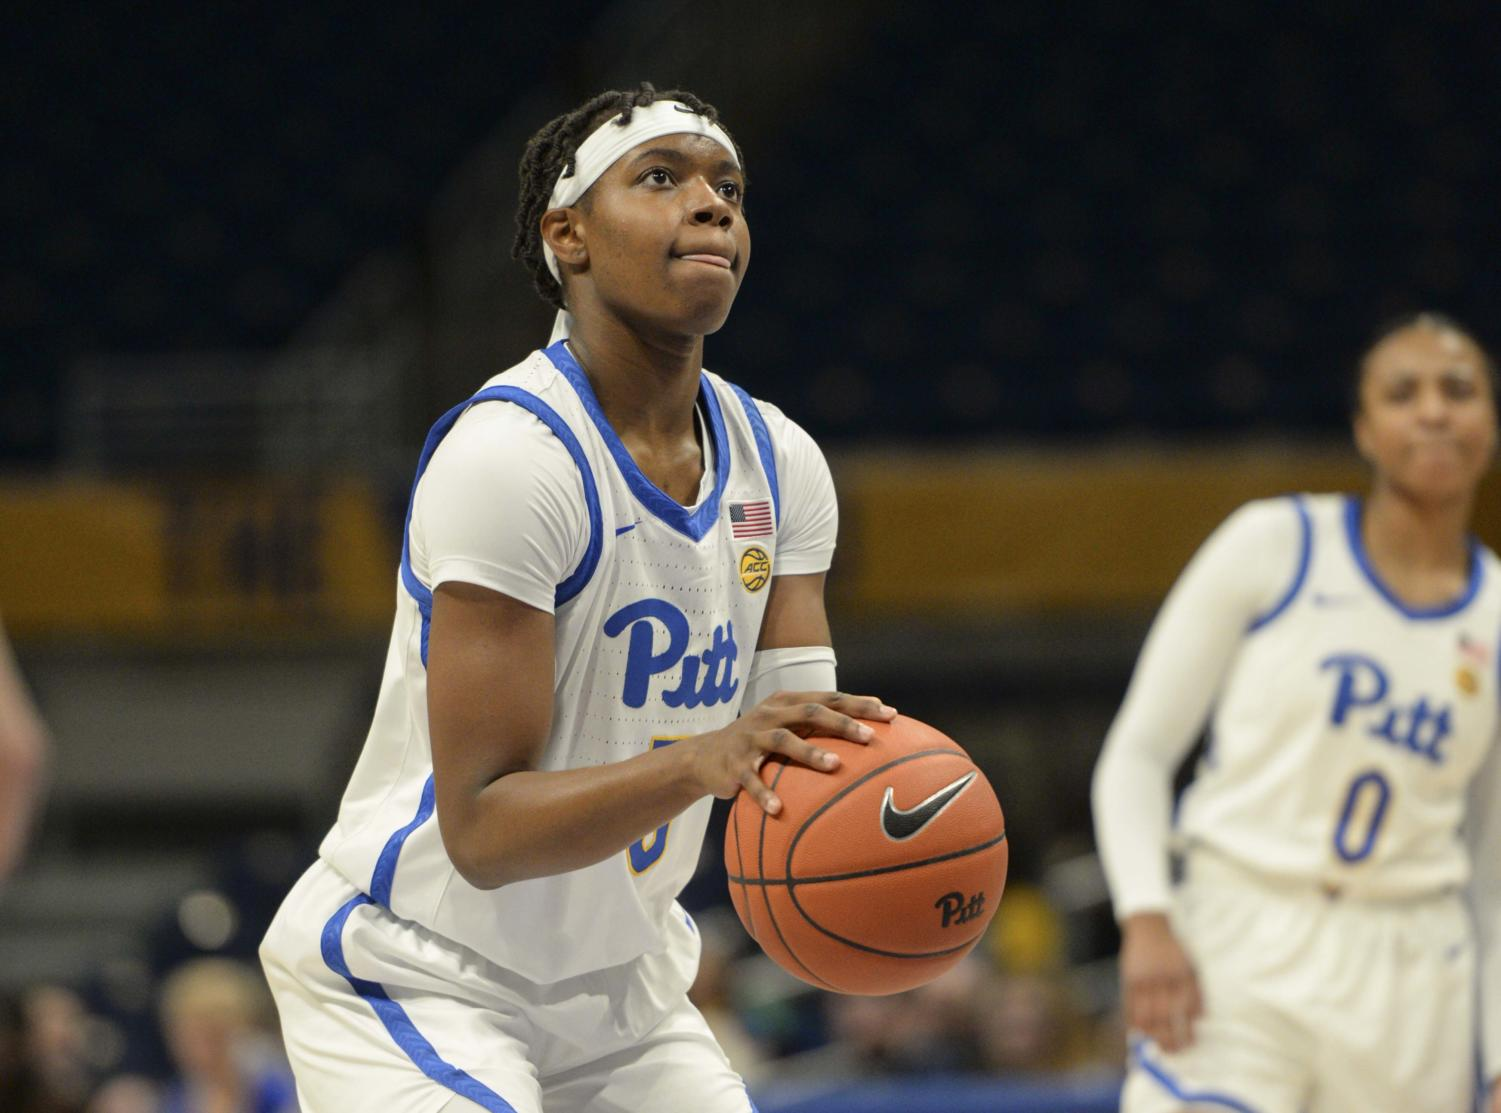 Amber Brown (5) led Pitt with 11 rebounds while contributing 12 points in a 60-52 loss to Notre Dame.